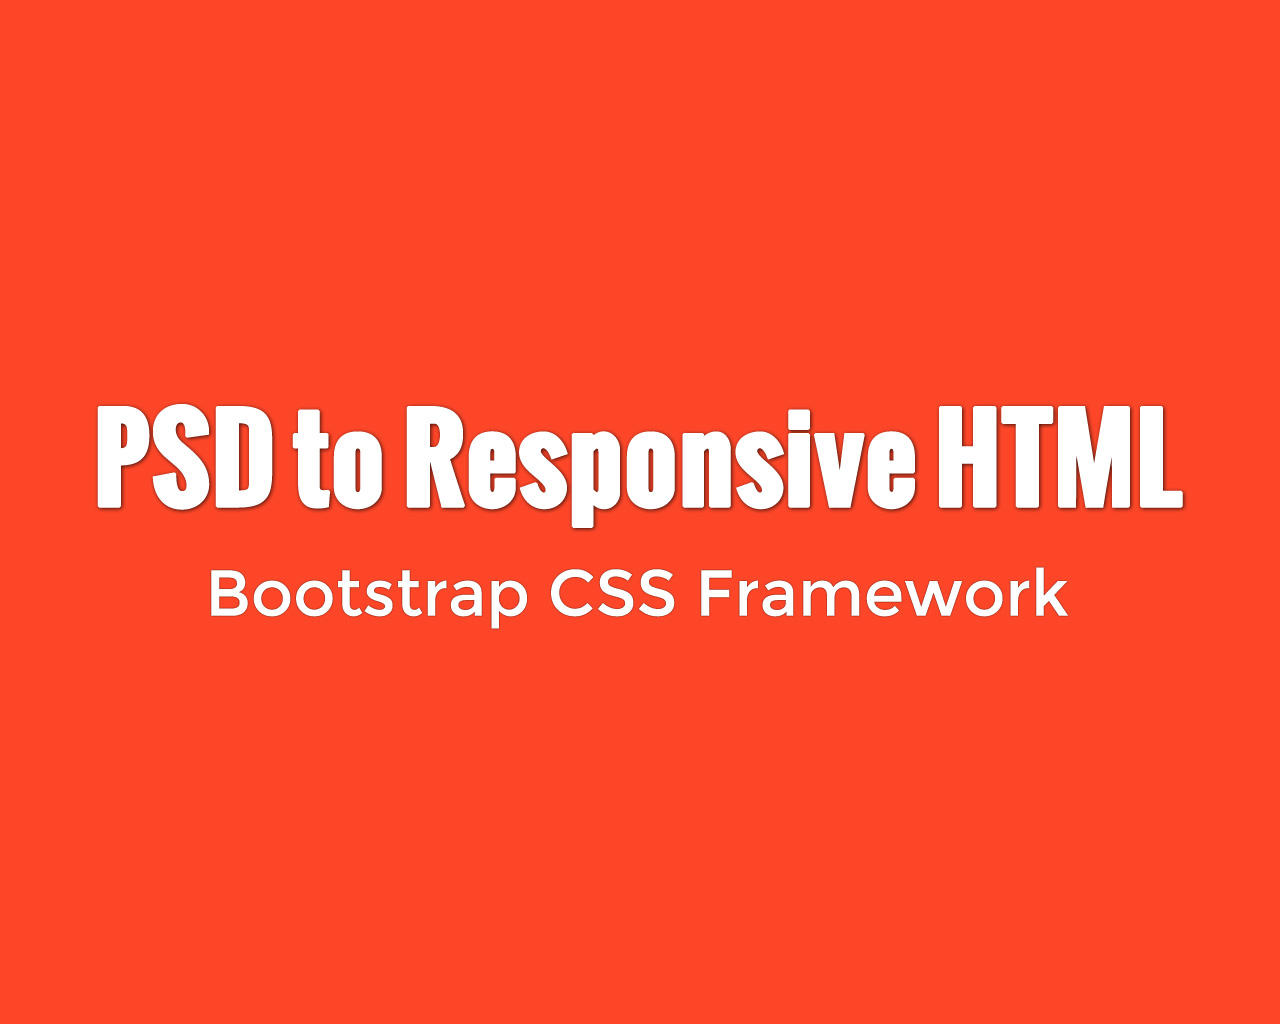 Pixel Perfect PSD to Responsive HTML (3 Pages + Bootstrap) by cWebConsultants - 76228